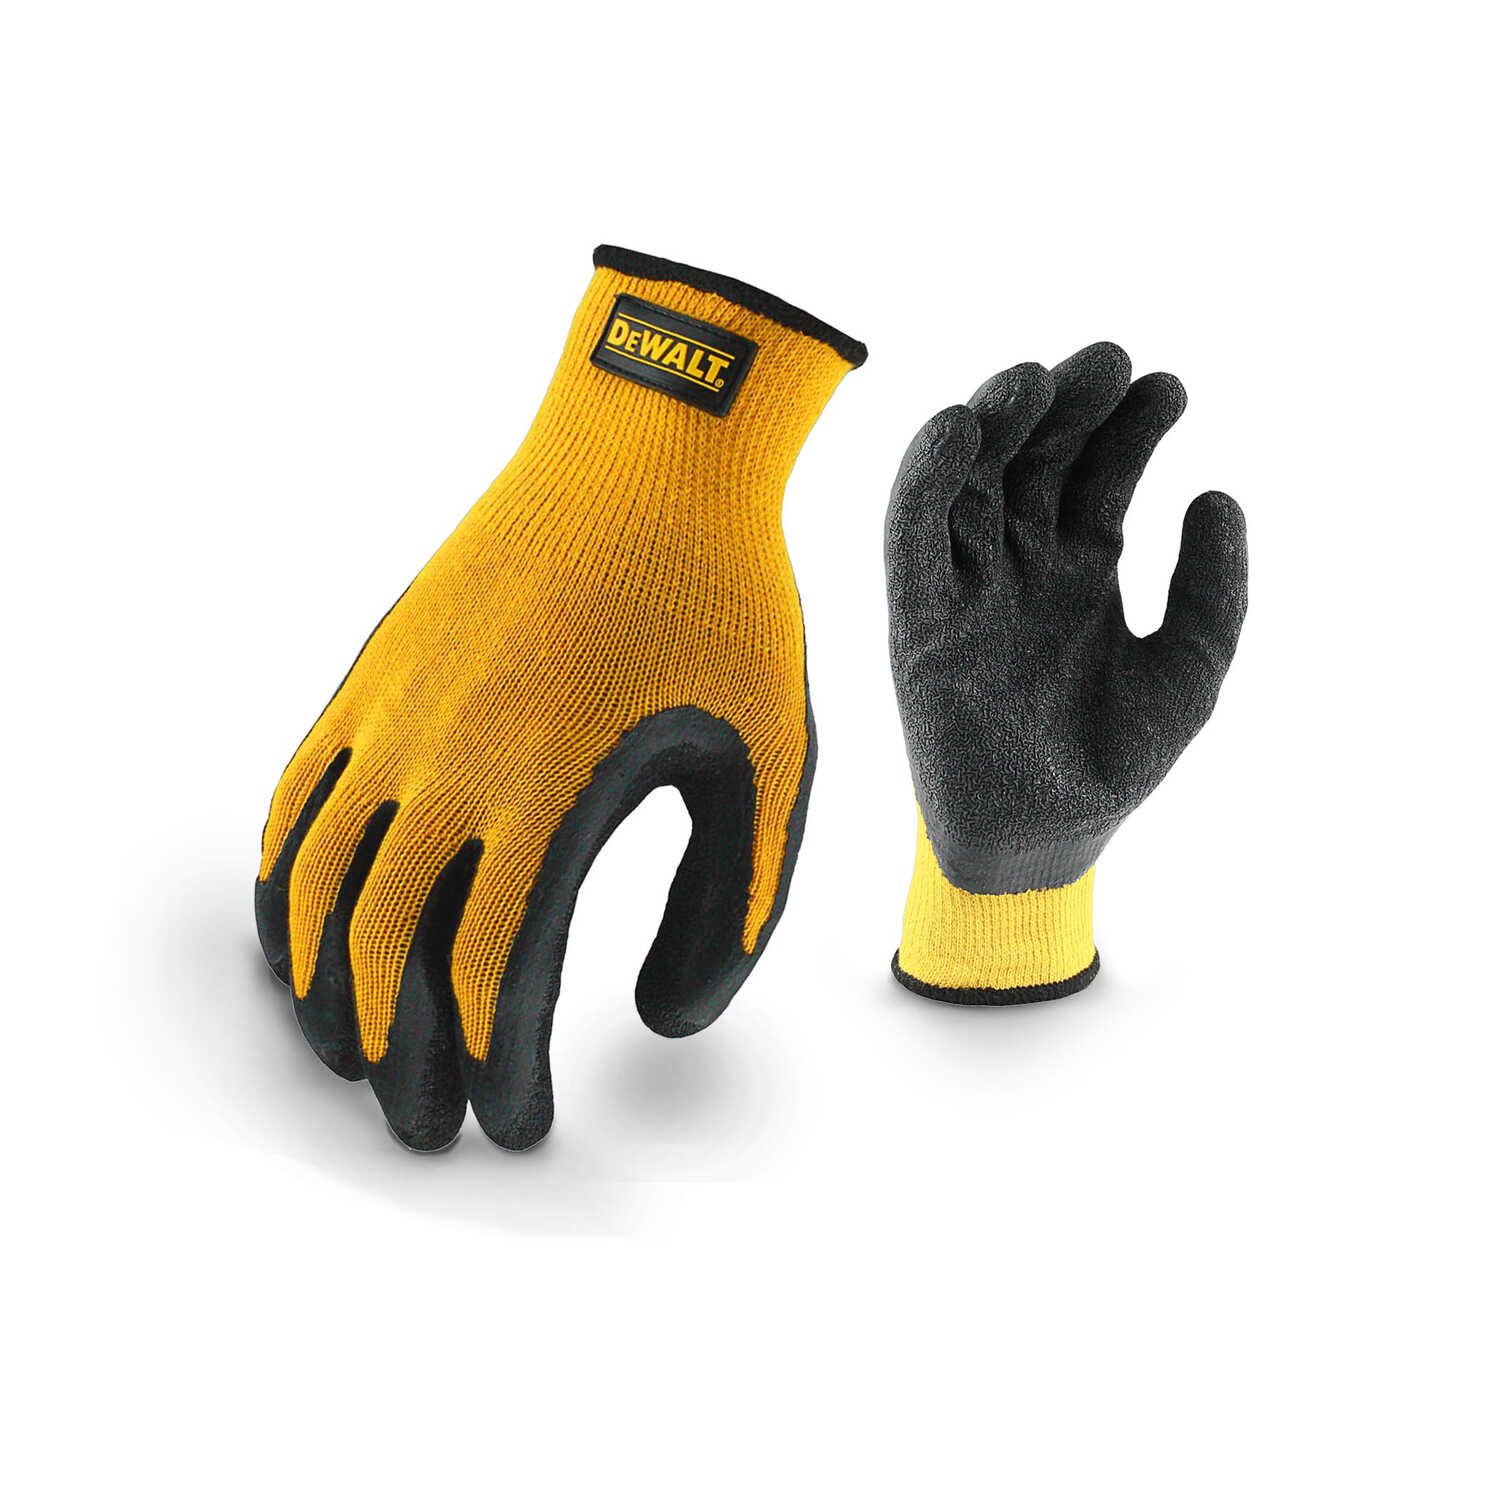 DeWalt  Radians  Unisex  Rubber  Grip  Gloves  Black/Yellow  L